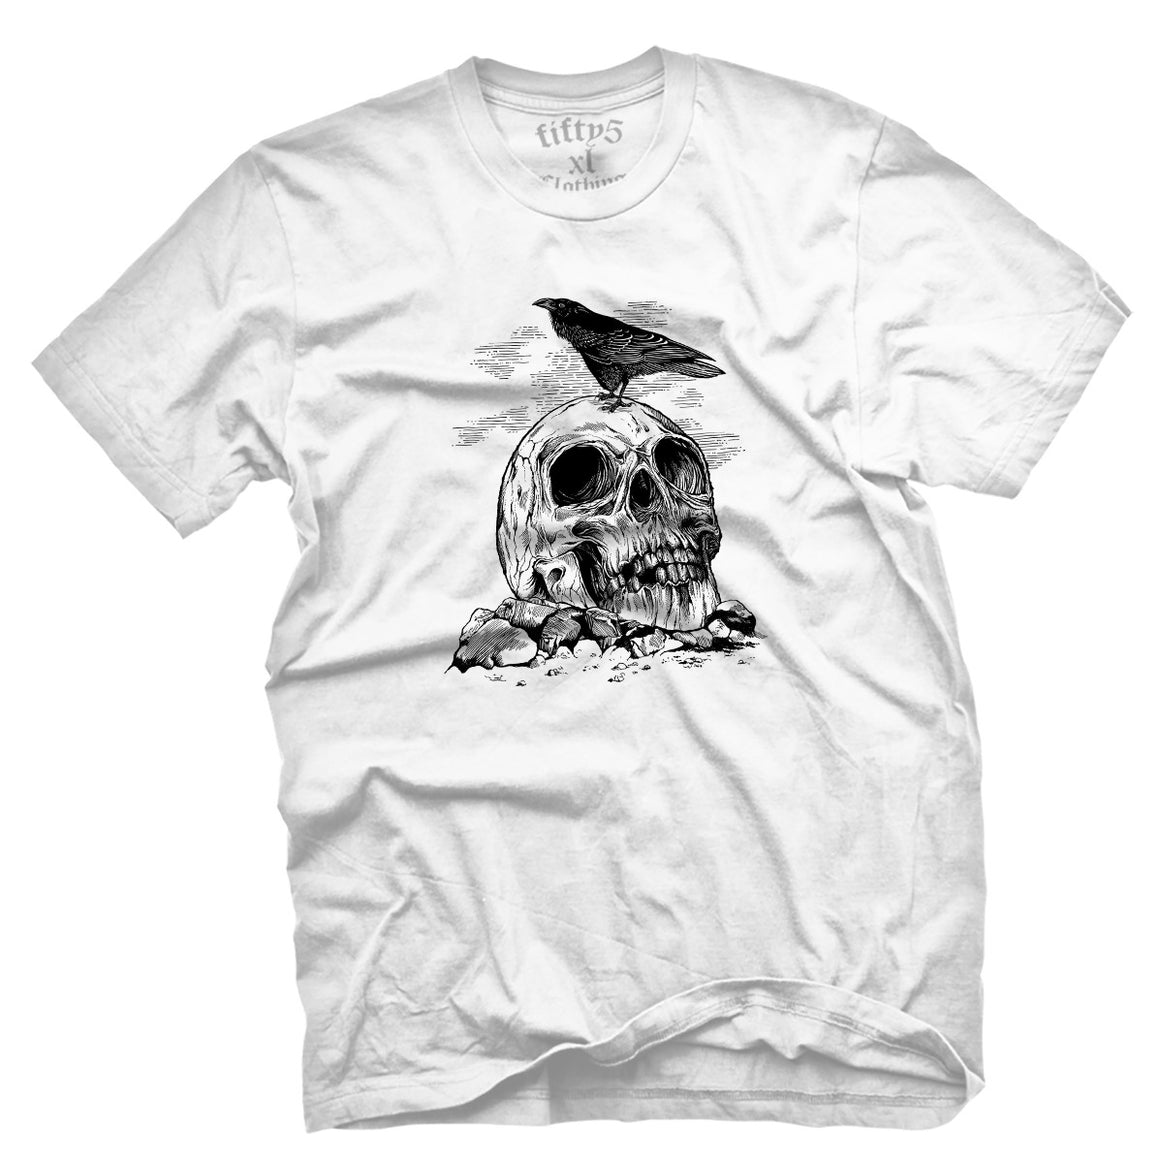 Fifty5 Clothing Raven Skull Men's T Shirt